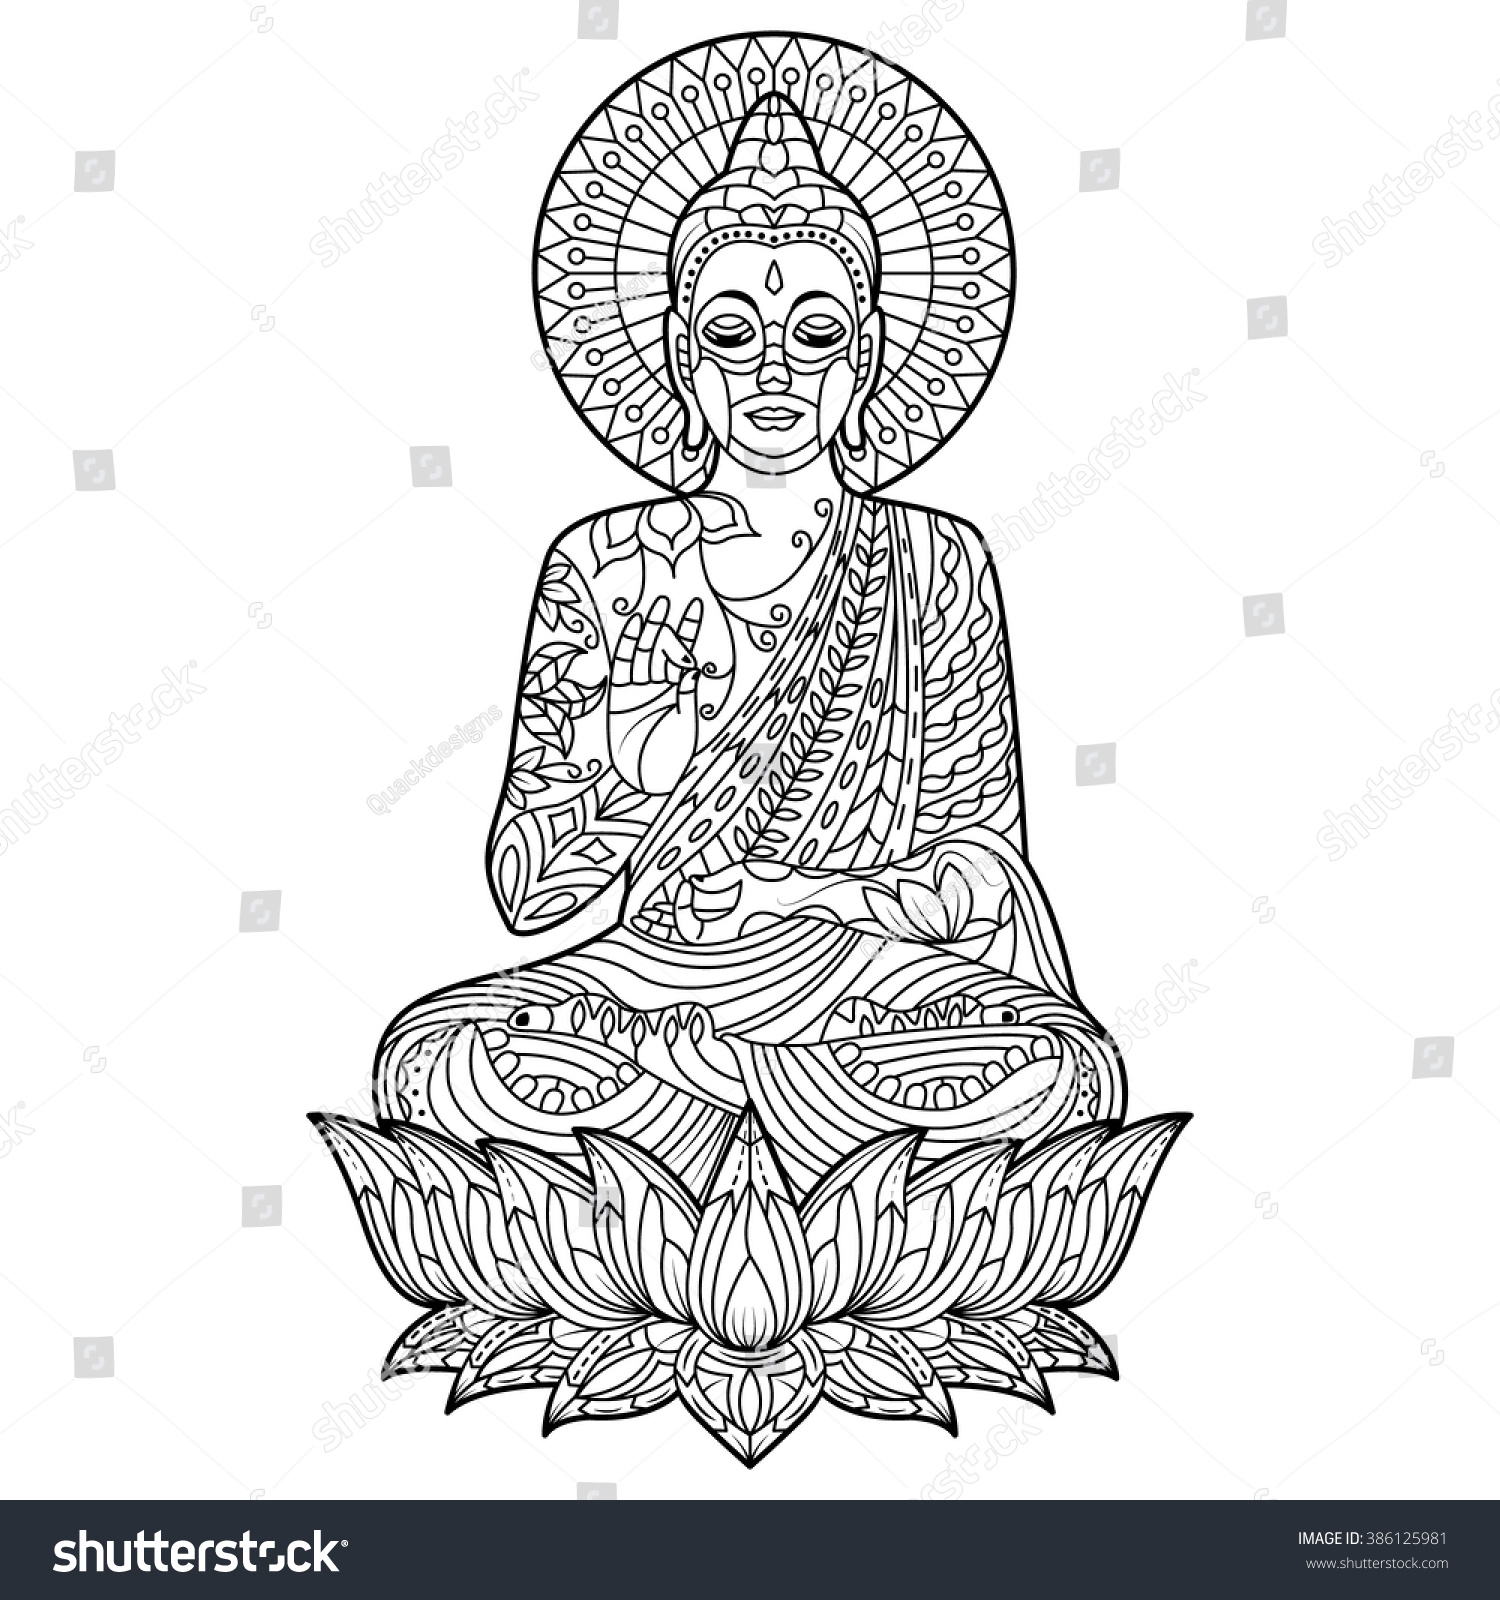 buddha coloring pages Gautam Buddha Coloring Page Position Meditation Stock Vector  buddha coloring pages